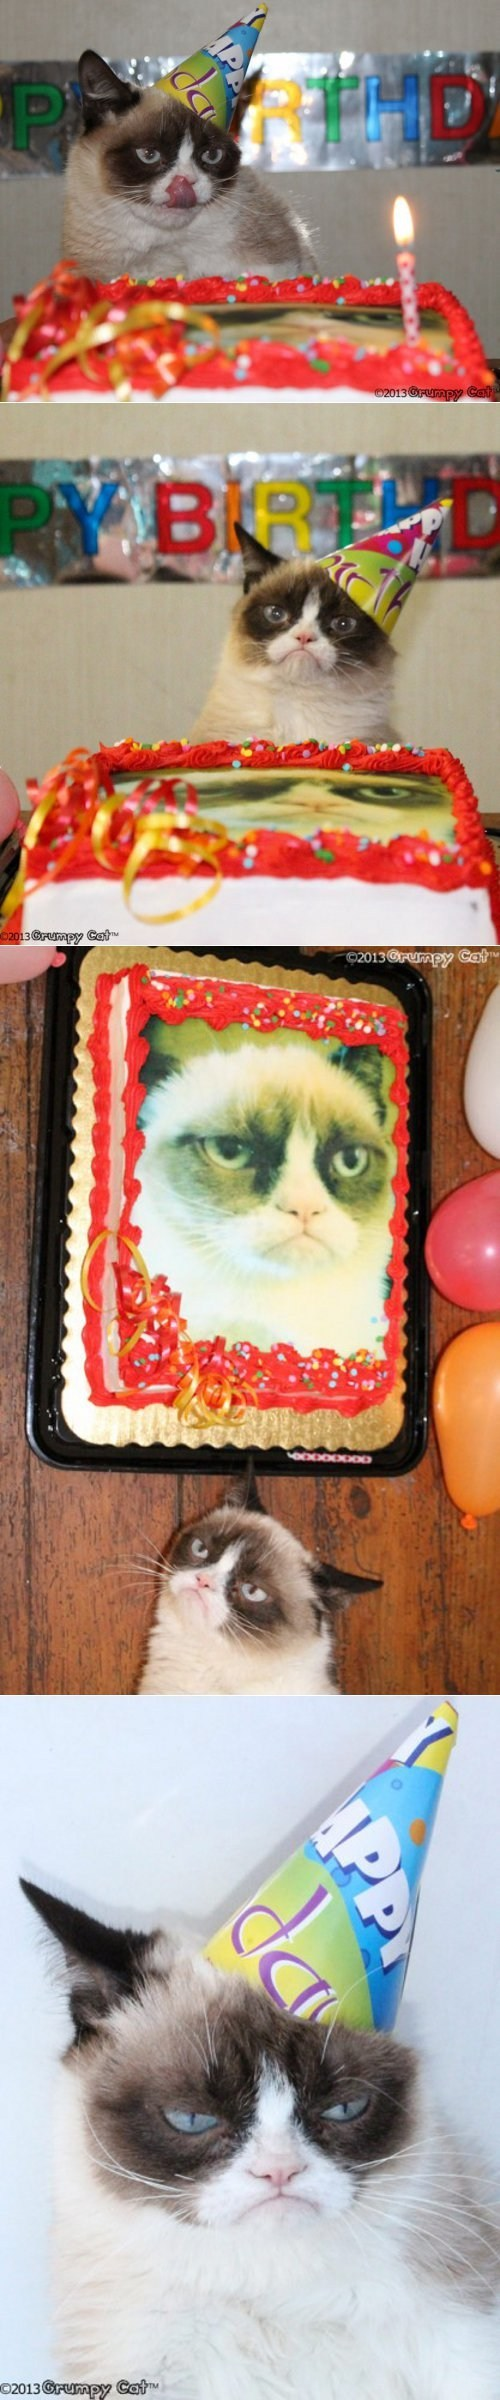 birthday Grumpy Cat - 7255993344